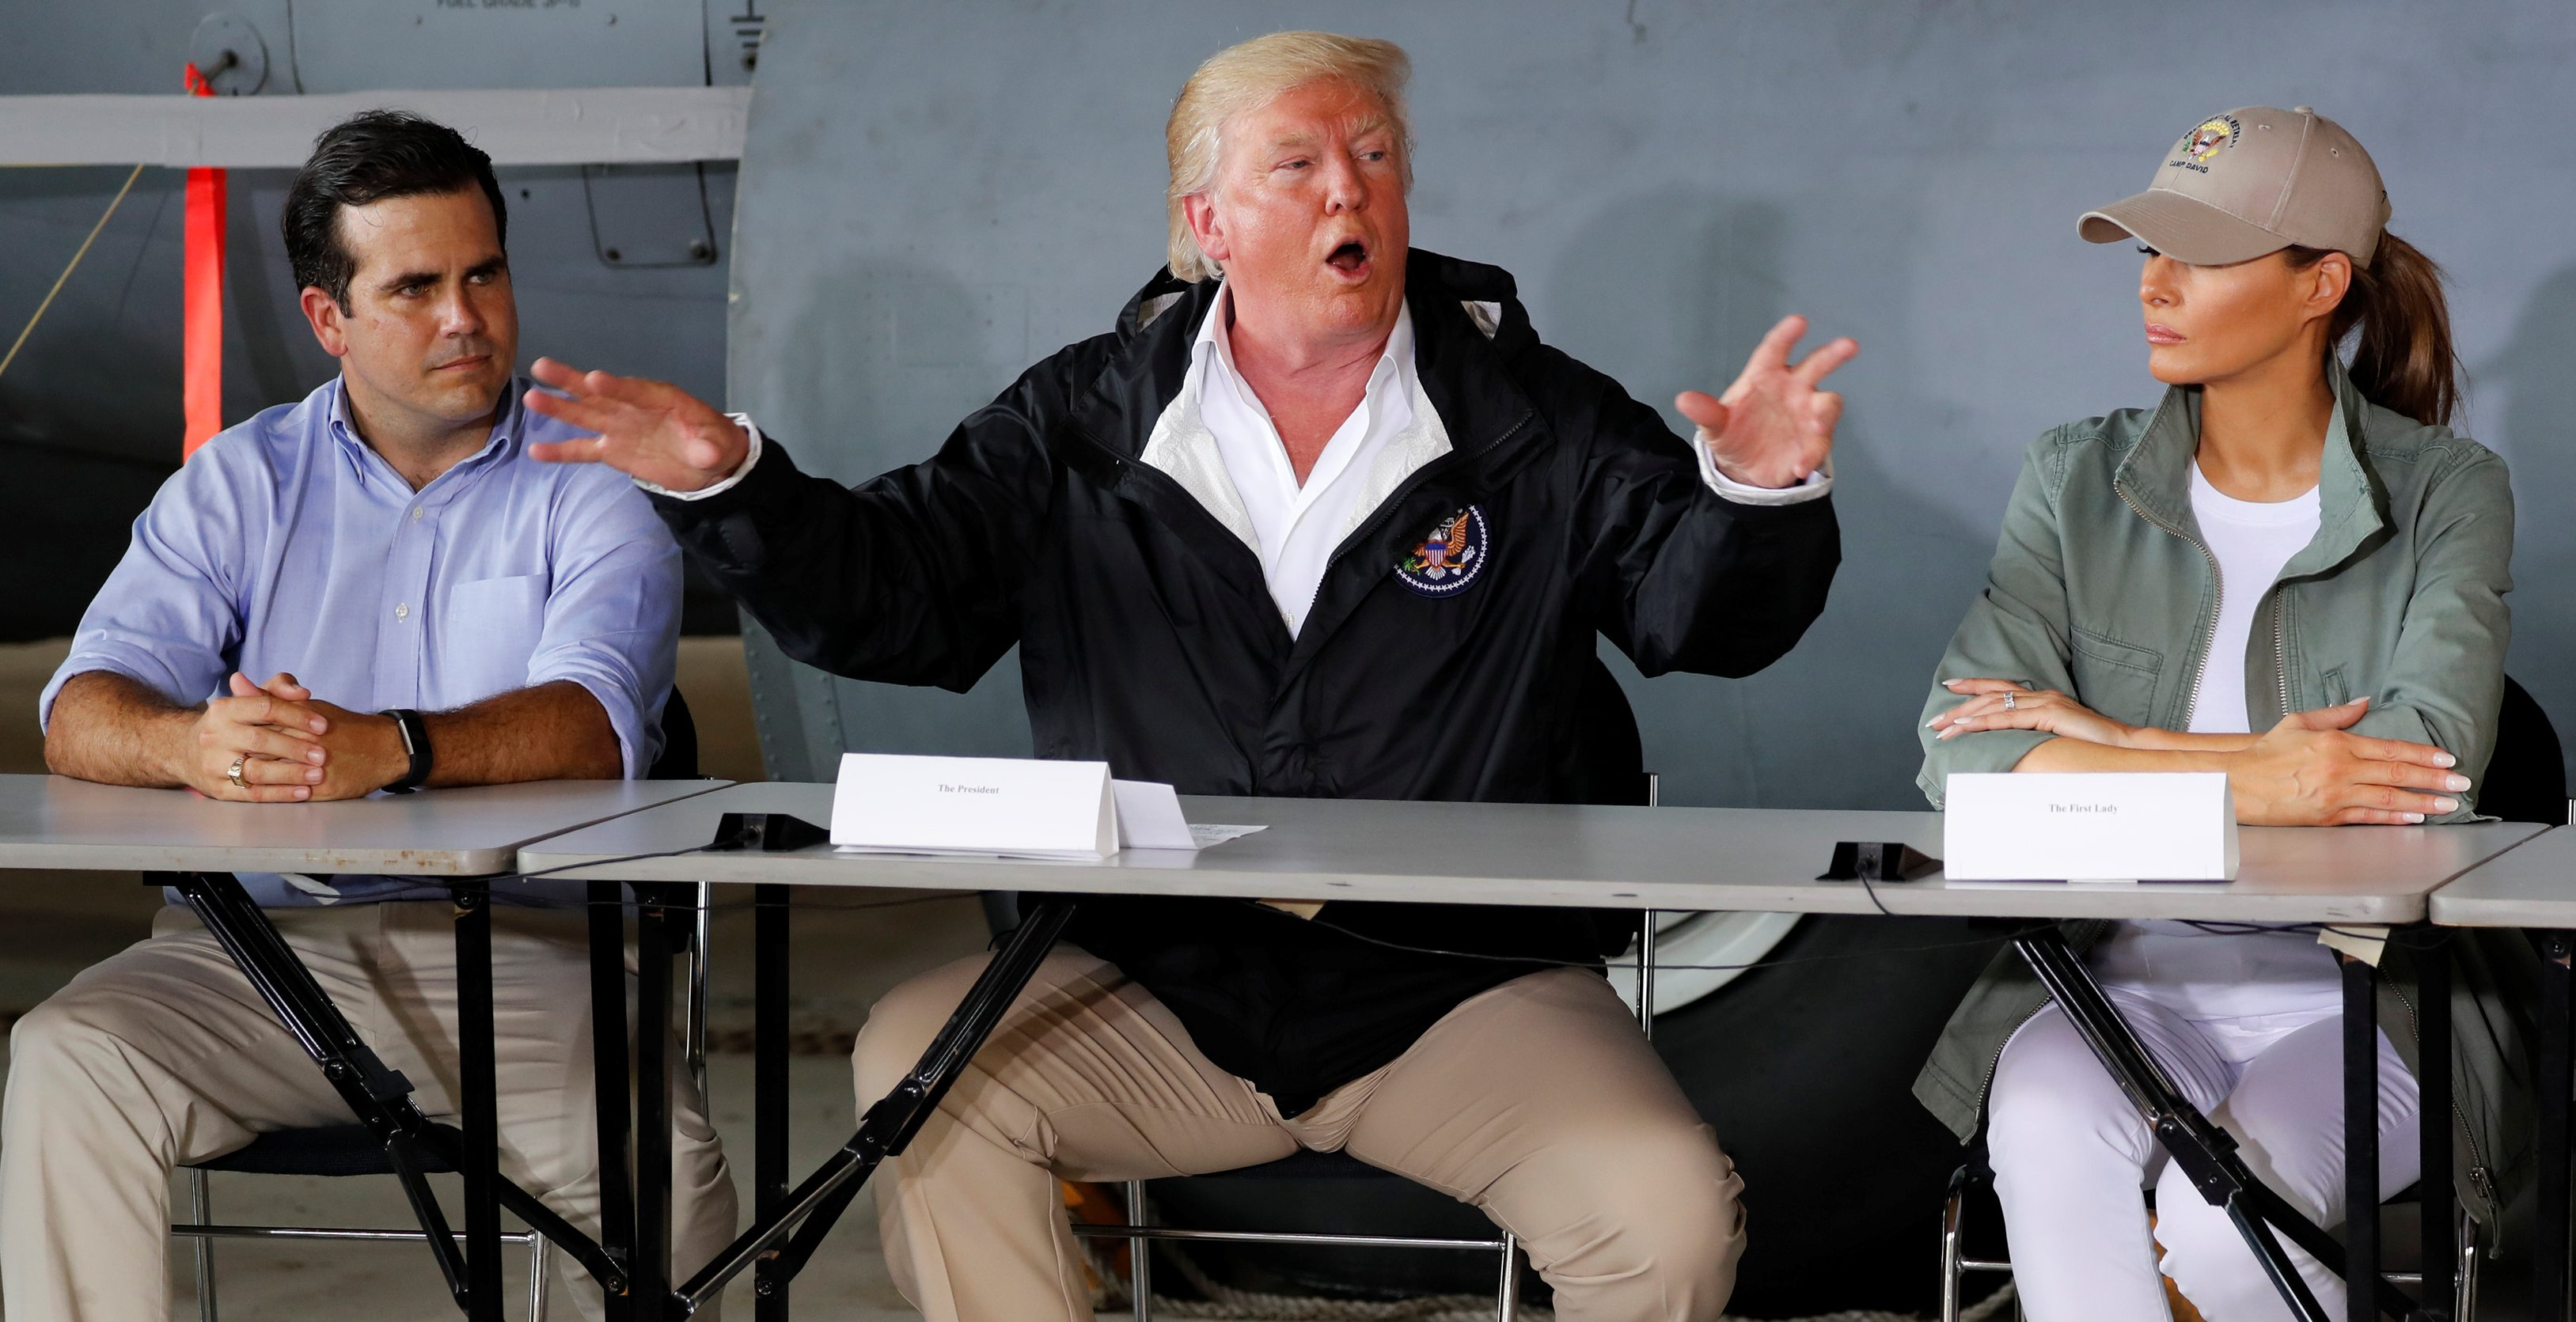 U.S. President Donald Trump, sitting between Puerto Rico Governor Ricardo Rossello and first lady Melania Trump, during his first visit to the island after hurricane Maria